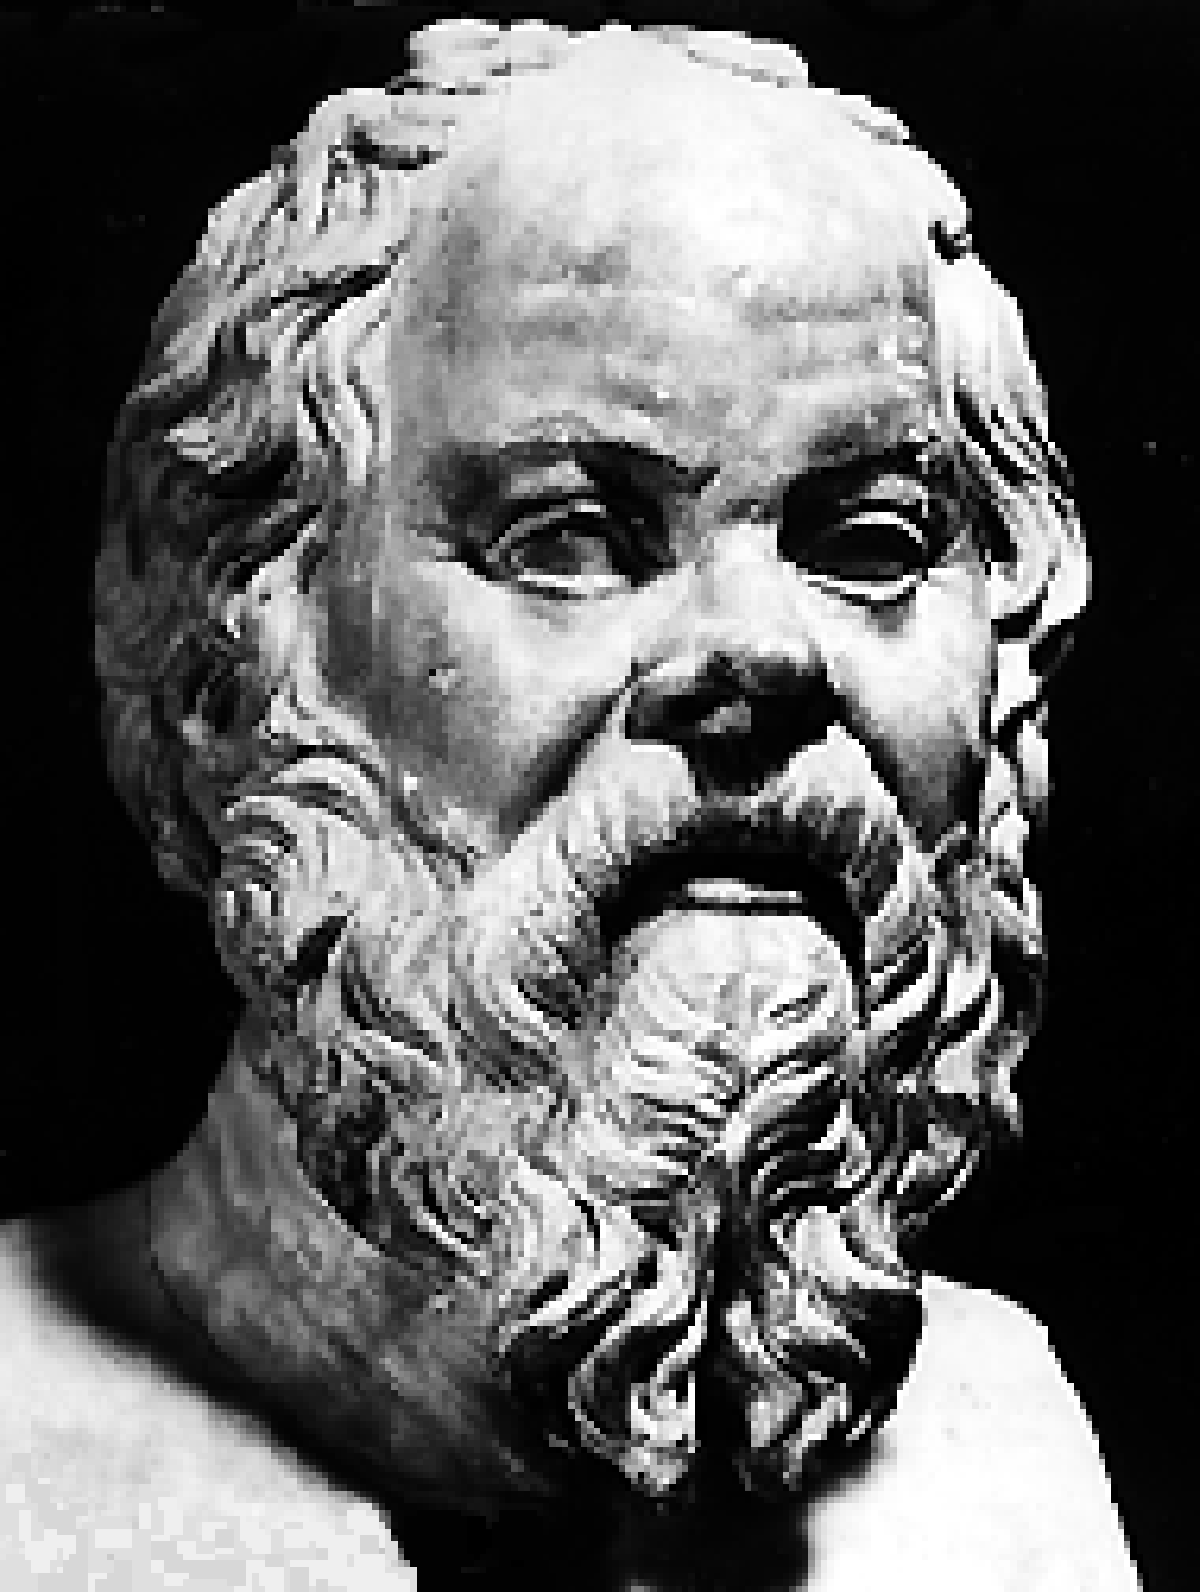 An examination of socrates and his works